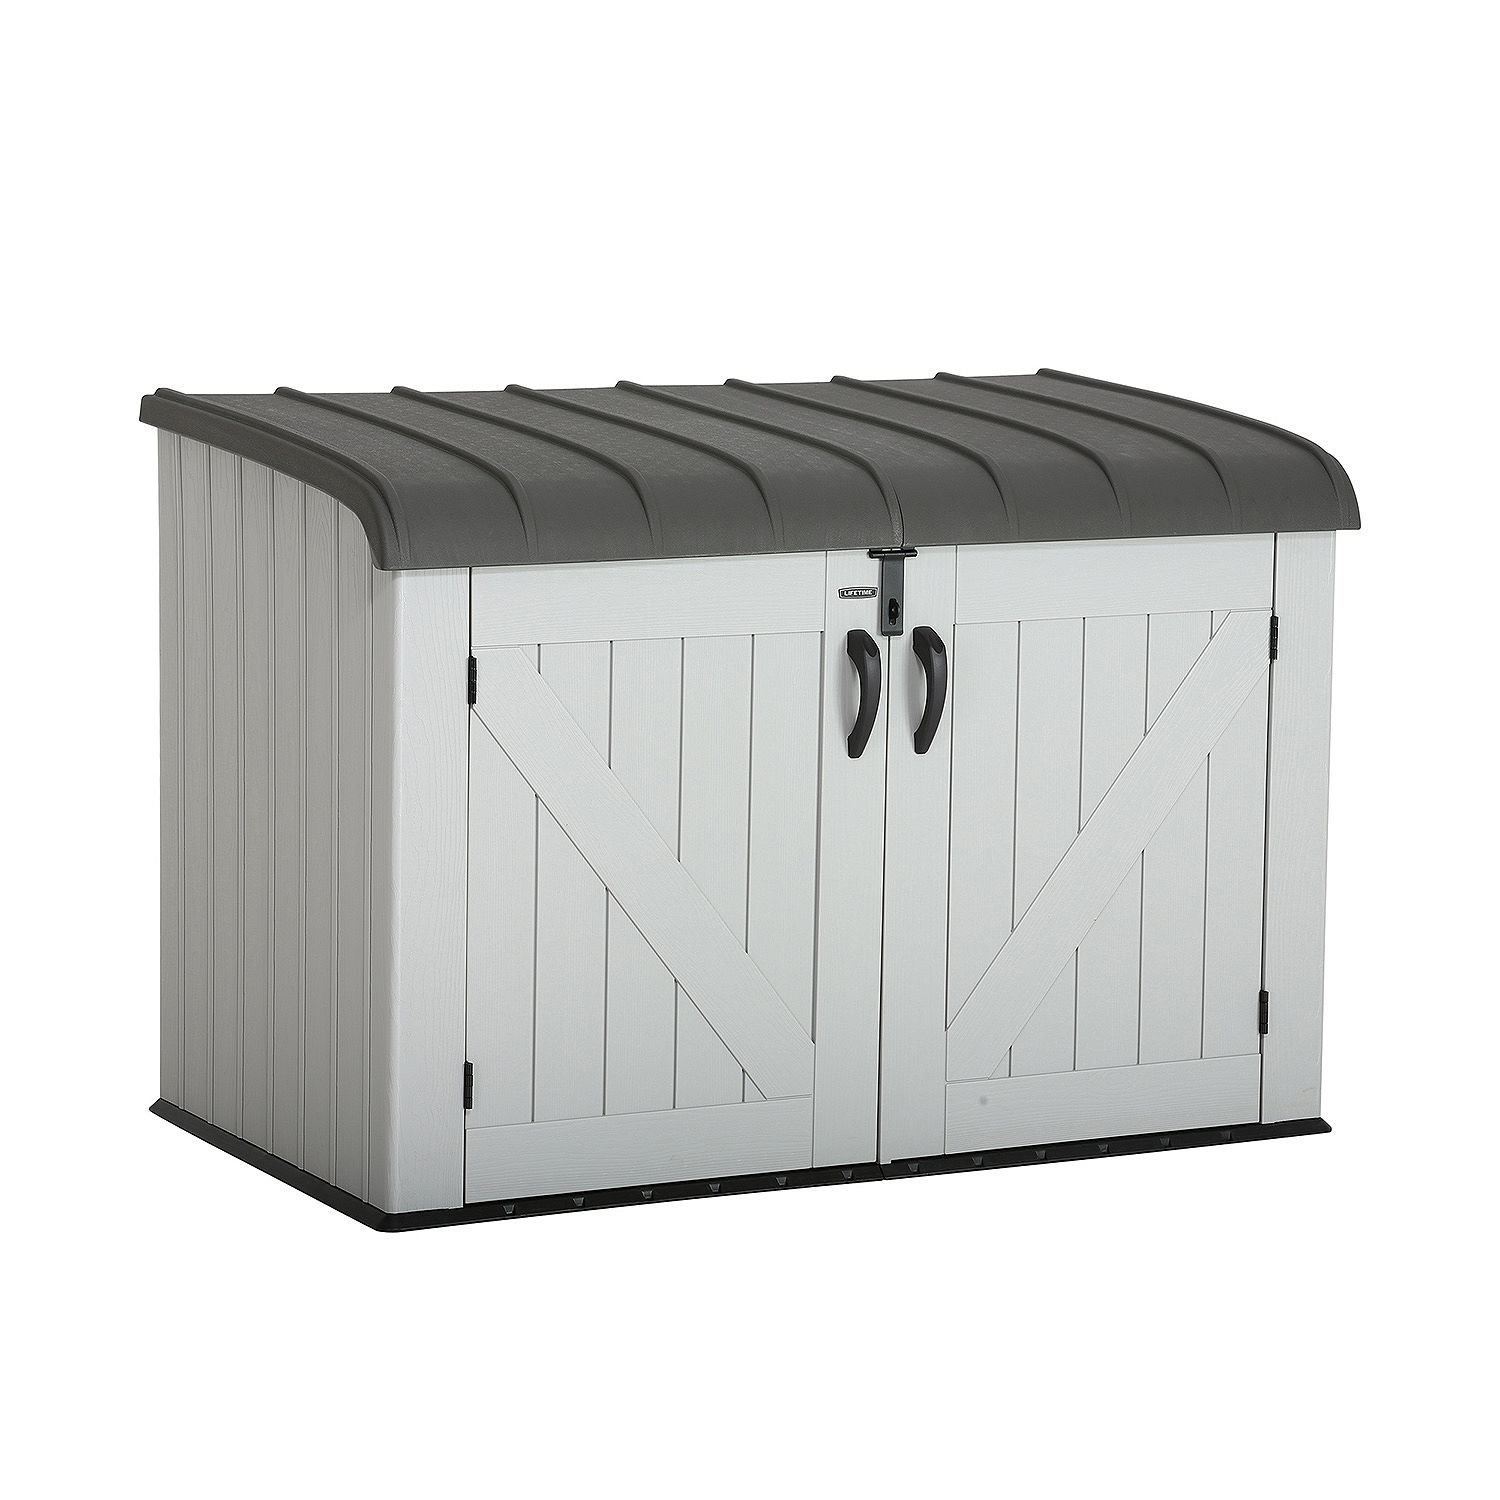 lifetime 6x3.5 plastic outdoor storage unit MOPWKFB